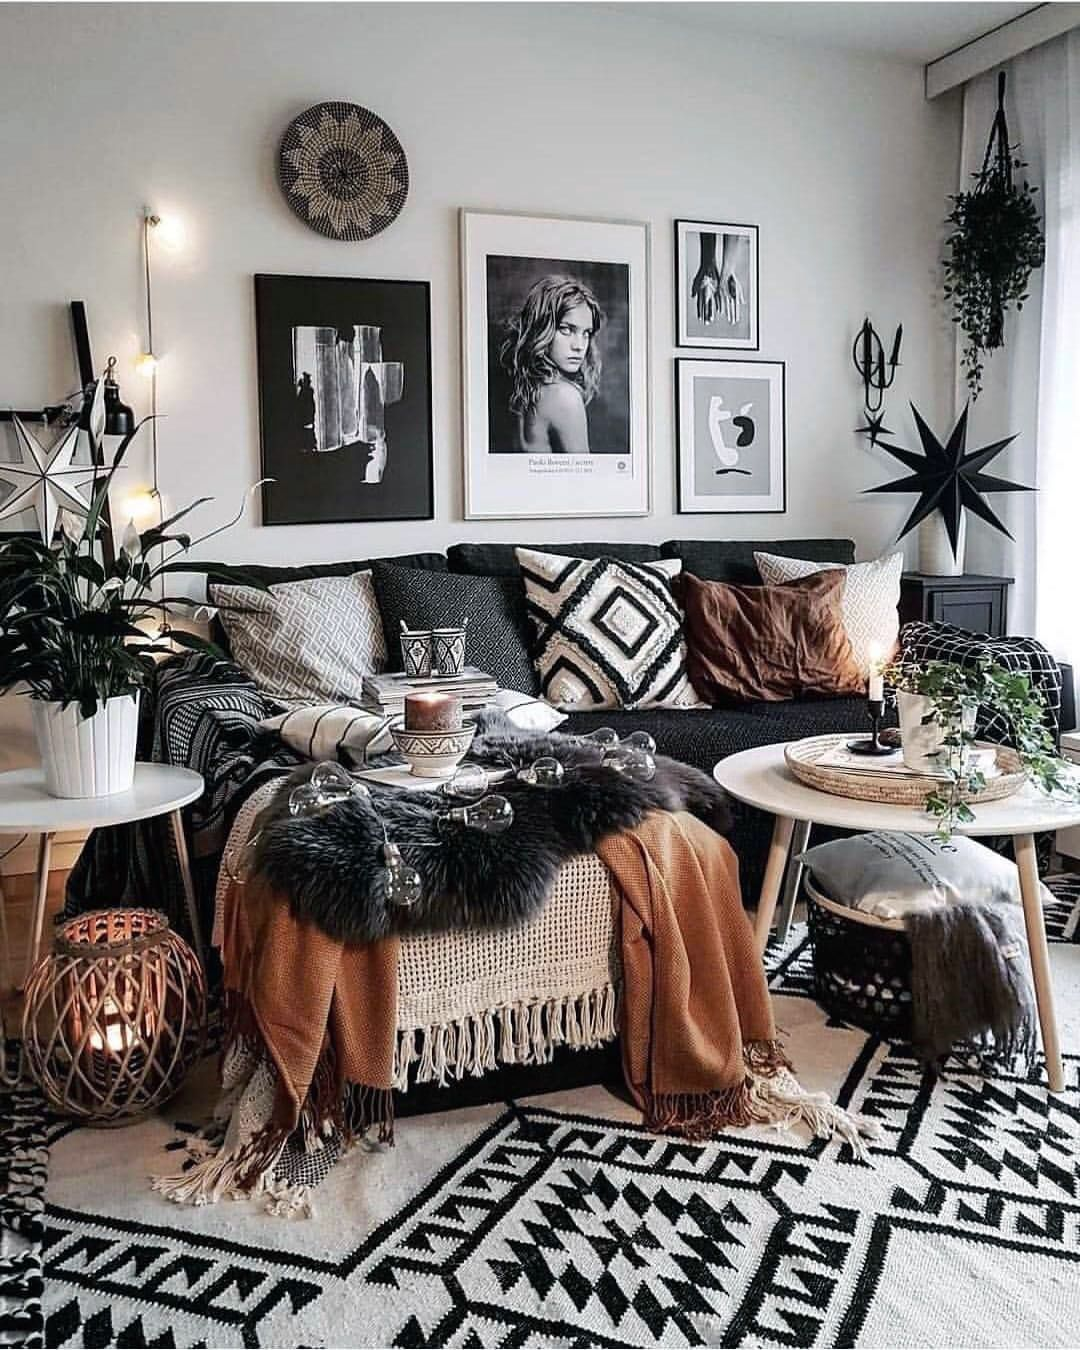 Best Cozy Black Gold And White Living Room For Your Home Living Room Decor Modern Boho Living Room 400 x 300